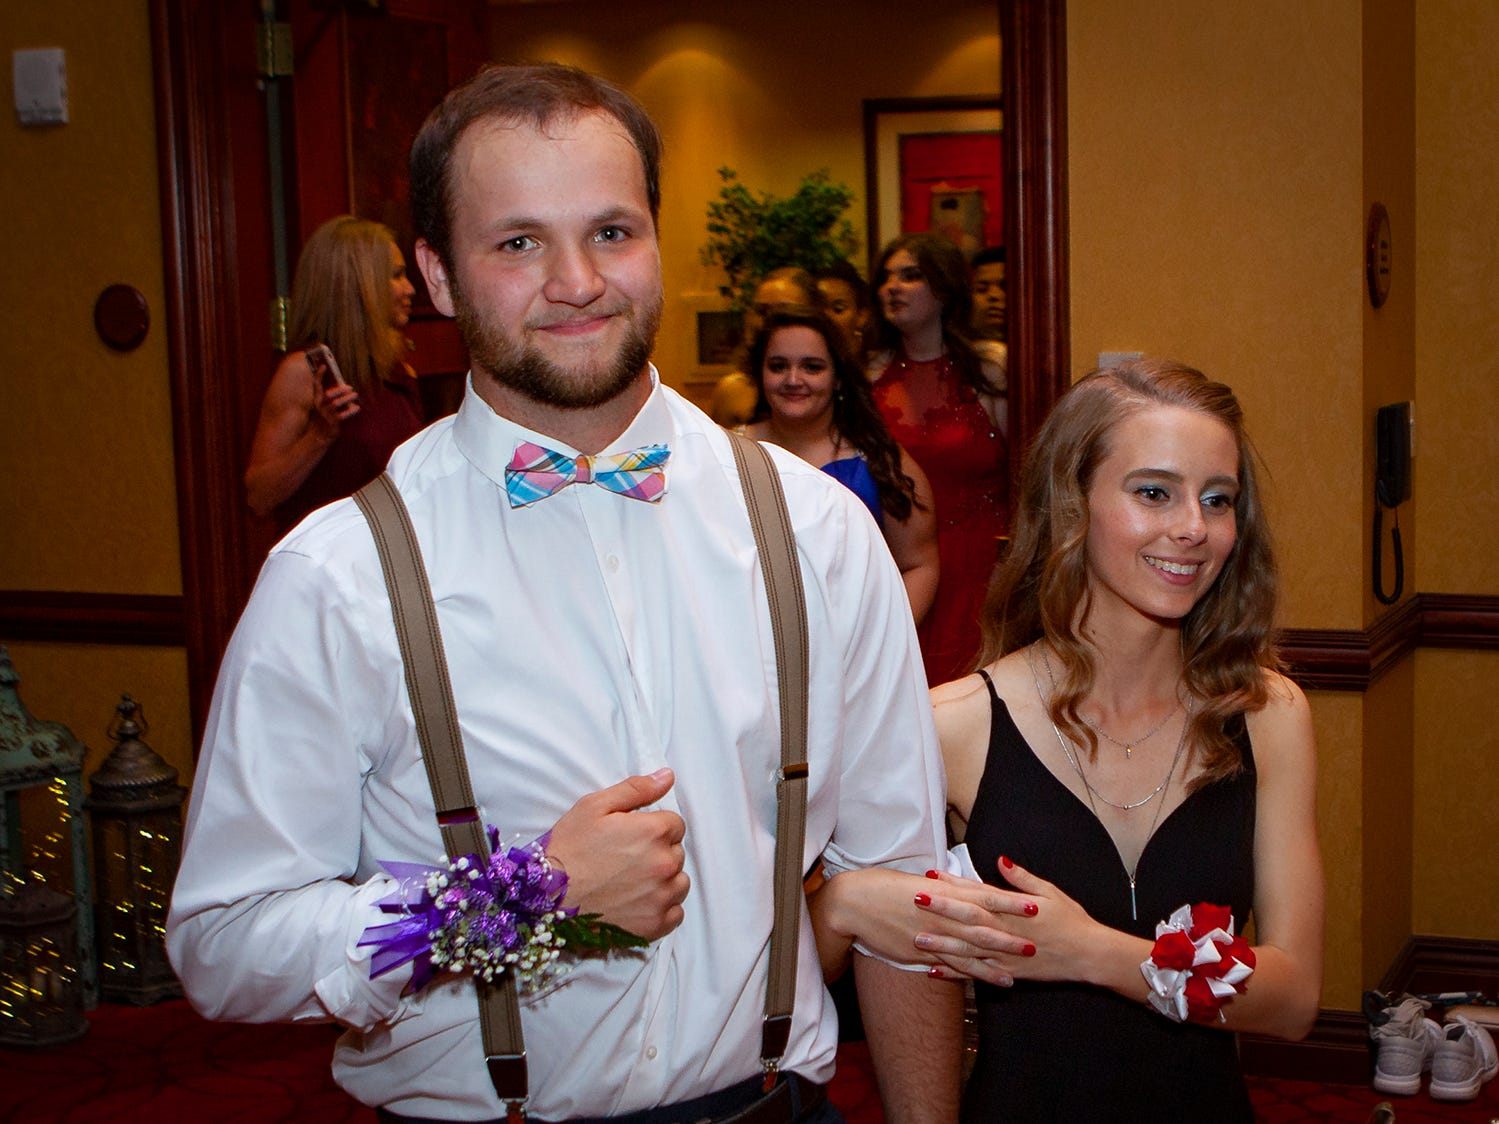 Central Magnet School students participate in the senior walk held during prom on Saturday, April 6, 2019 at Embassy Suites in Murfreesboro.